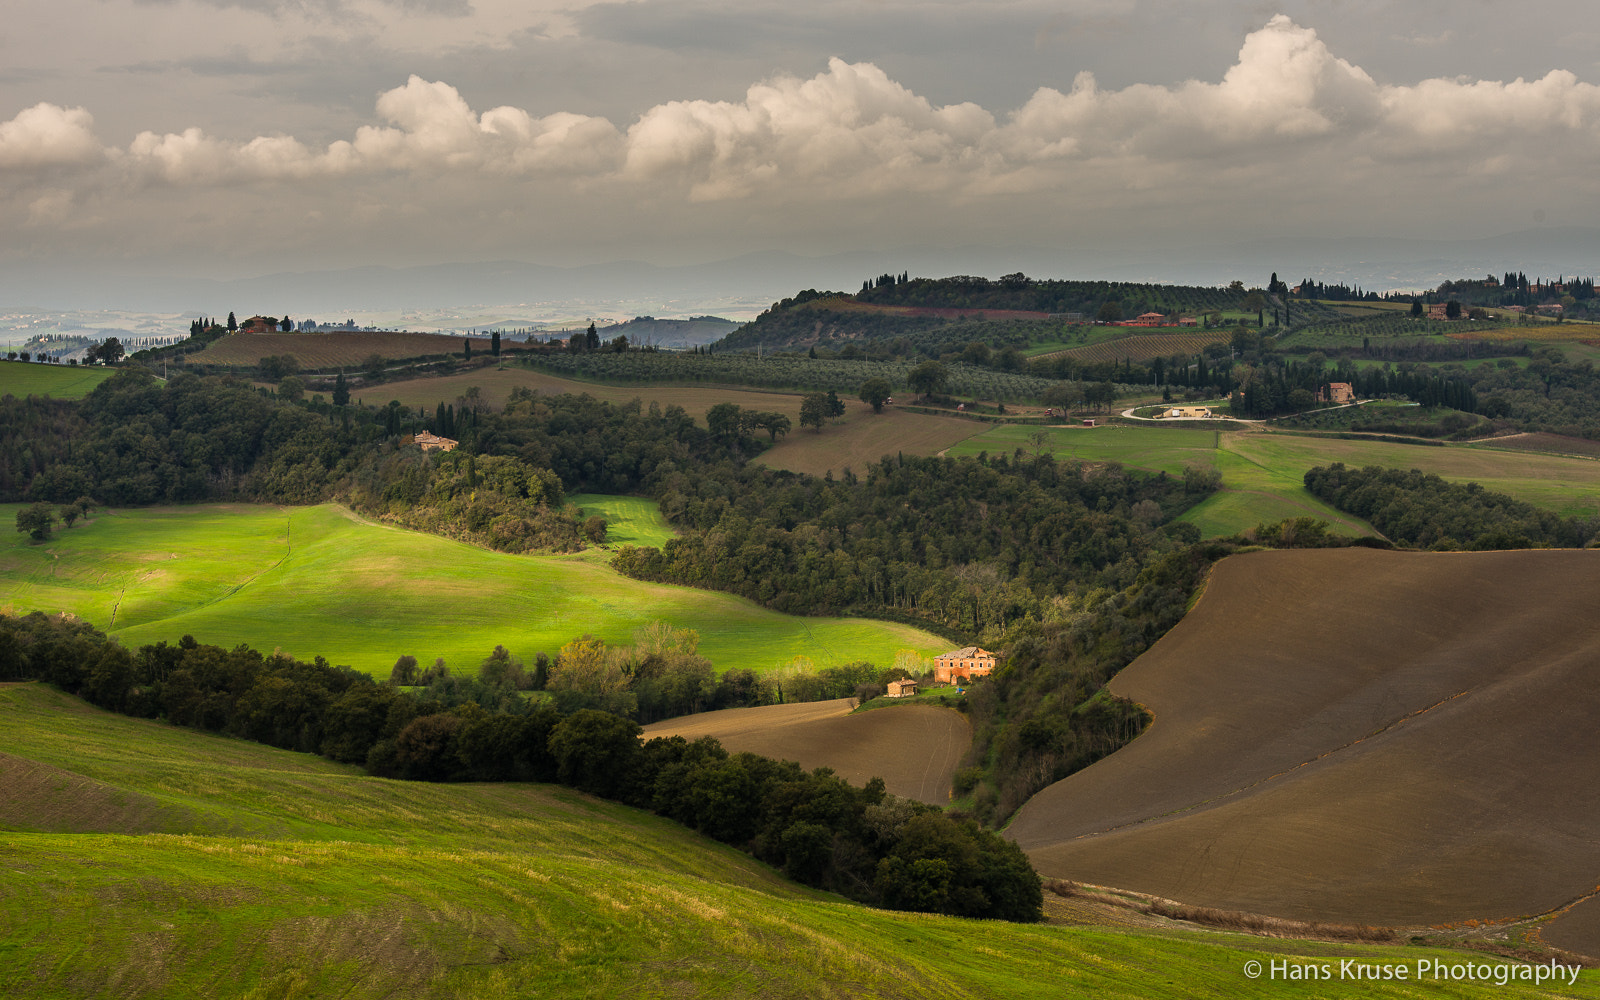 Photograph Tuscan landscape in November by Hans Kruse on 500px